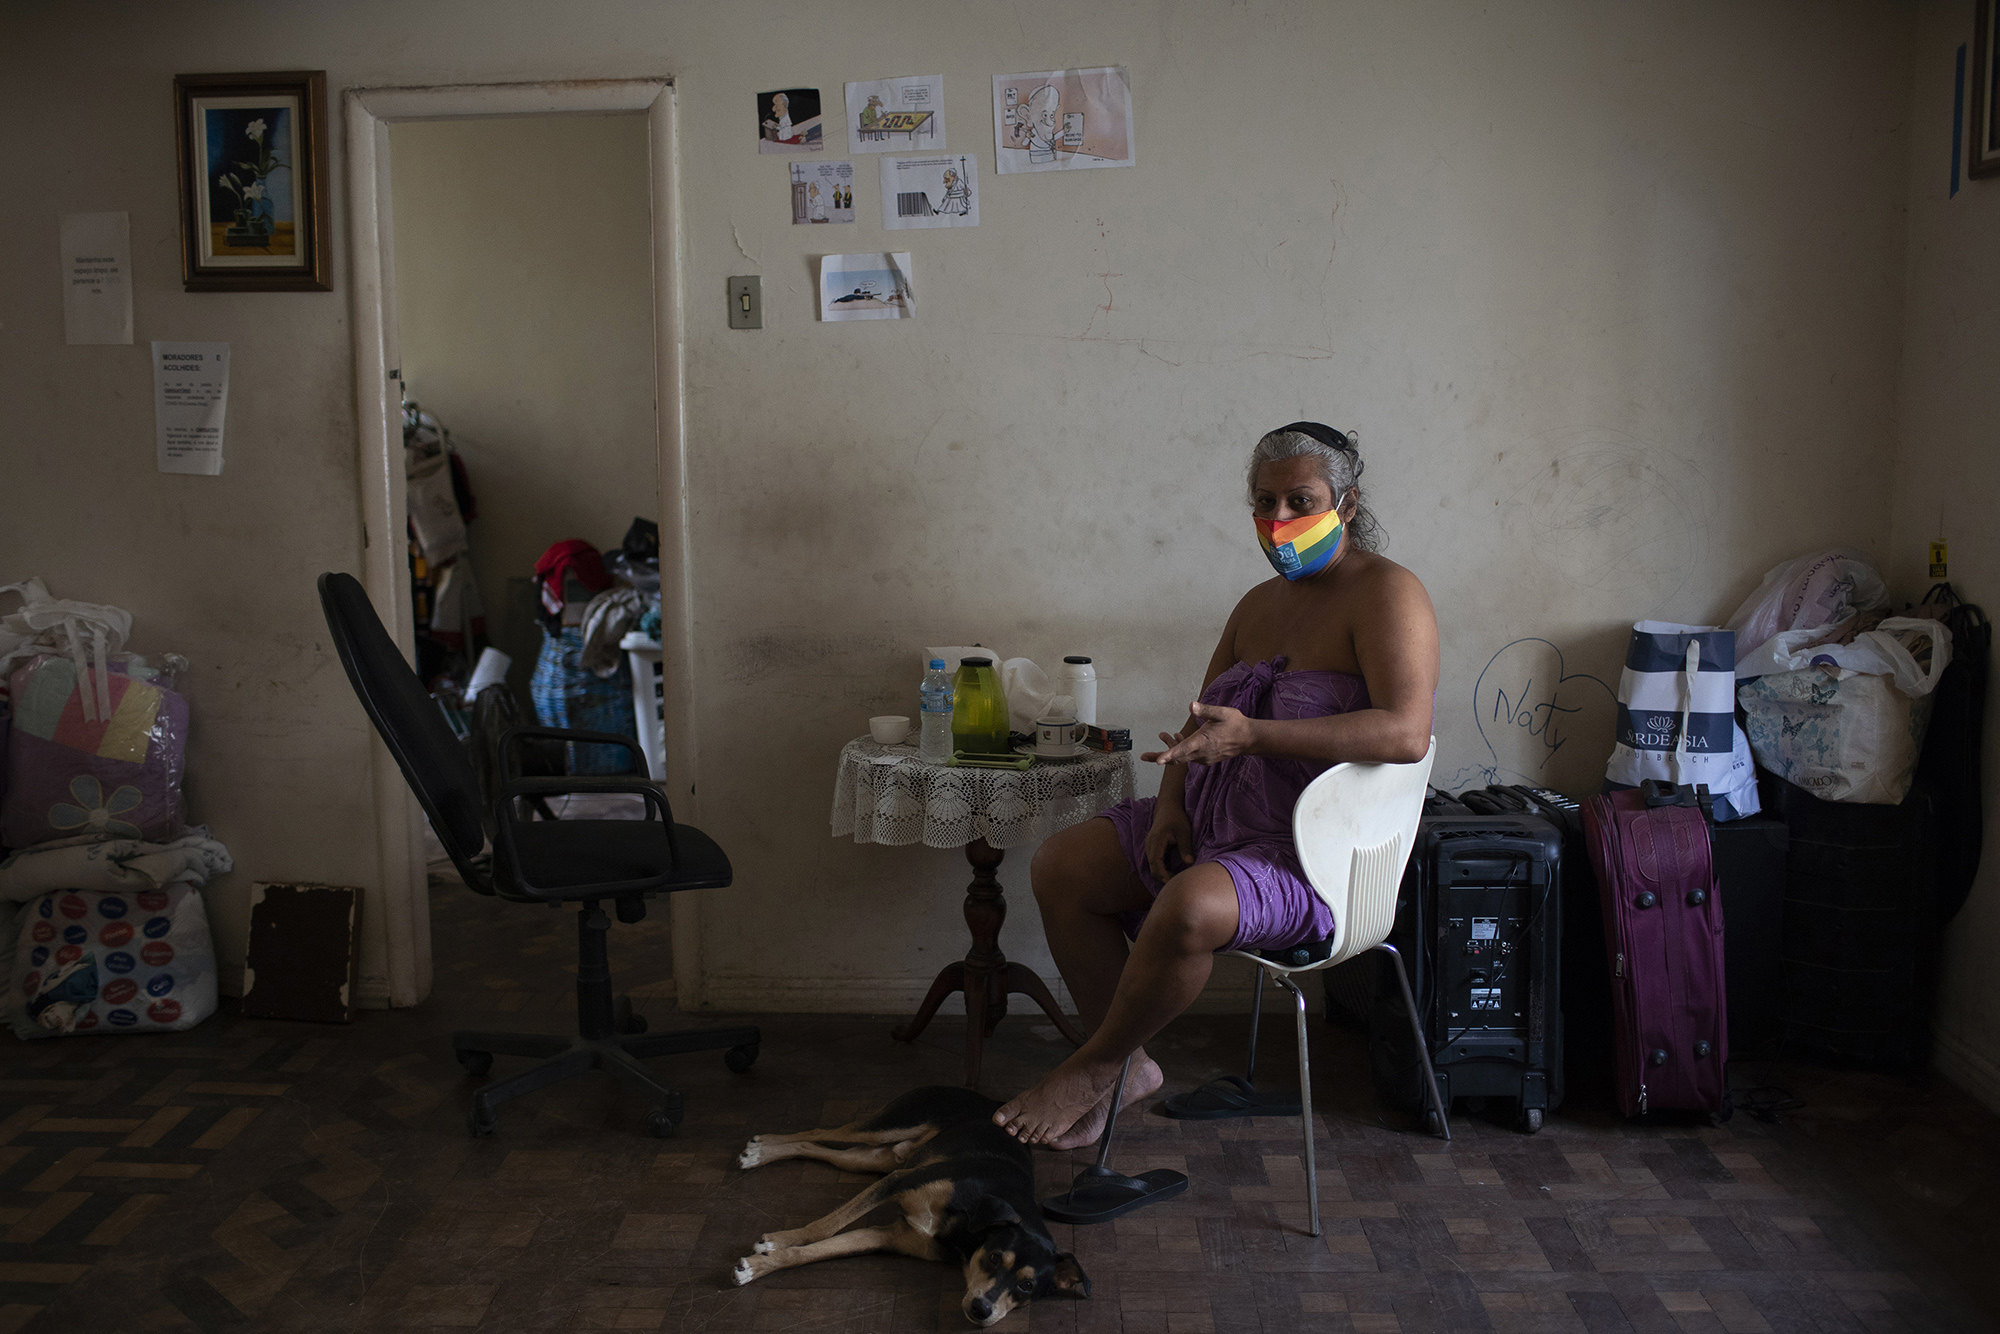 Indianara Siqueira poses for a photo in her room at the squat known as Casa Nem, occupied by members of the LGBTQ community who are in self-quarantine as a protective measure against the new coronavirus, in Rio de Janeiro, Brazil, Friday, May 22, 2020.